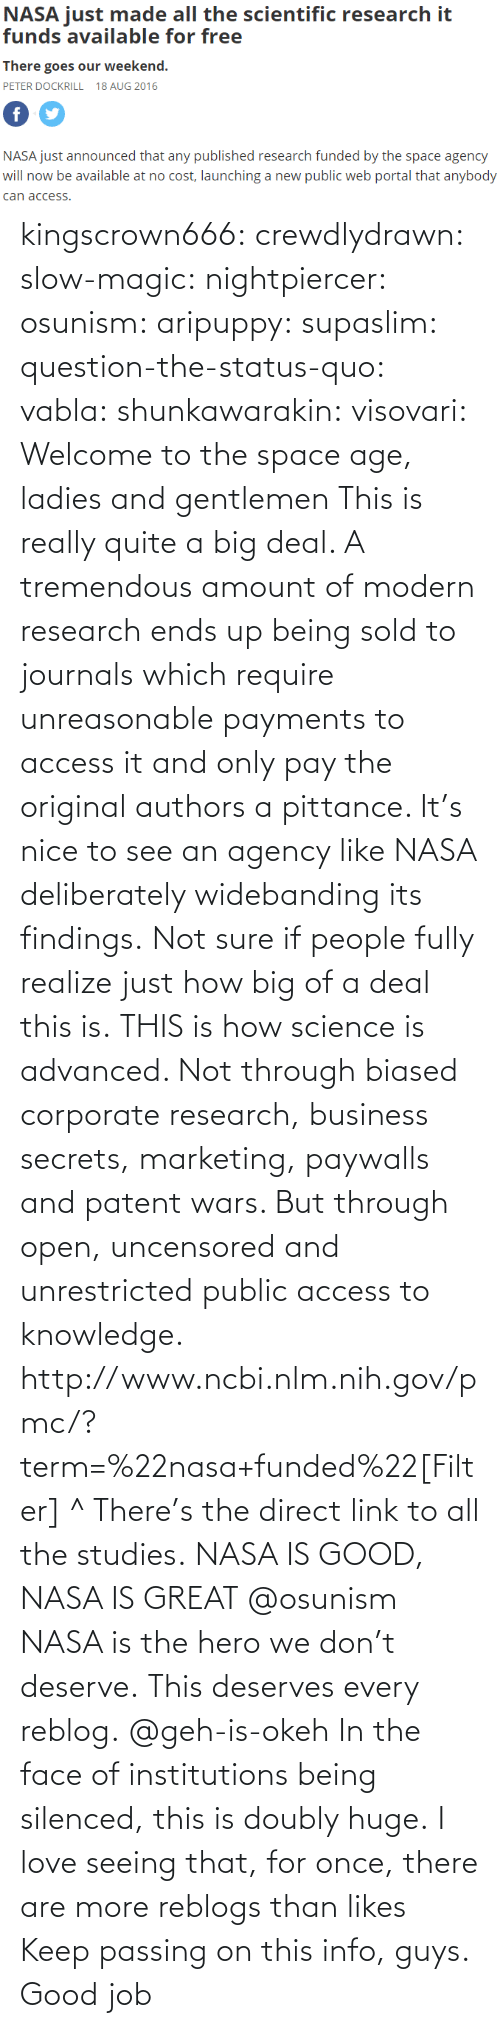 To See: NASA just mde alll the sciemtiic research i  funds available for free  There goes our weekend.  PETER DOCKRILL 18 AUG 2016  NASA just announced that any published research funded by the space agency  will now be available at no cost, launching a new public web portal that anybody  can access kingscrown666: crewdlydrawn:  slow-magic:   nightpiercer:  osunism:  aripuppy:   supaslim:  question-the-status-quo:  vabla:  shunkawarakin:  visovari:  Welcome to the space age, ladies and gentlemen  This is really quite a big deal. A tremendous amount of modern research ends up being sold to journals which require unreasonable payments to access it and only pay the original authors a pittance. It's nice to see an agency like NASA deliberately widebanding its findings.  Not sure if people fully realize just how big of a deal this is.  THIS is how science is advanced. Not through biased corporate research, business secrets, marketing, paywalls and patent wars. But through open, uncensored and unrestricted public access to knowledge.  http://www.ncbi.nlm.nih.gov/pmc/?term=%22nasa+funded%22[Filter] ^ There's the direct link to all the studies.  NASA IS GOOD, NASA IS GREAT  @osunism   NASA is the hero we don't deserve.   This deserves every reblog.  @geh-is-okeh   In the face of institutions being silenced, this is doubly huge.   I love seeing that, for once, there are more reblogs than likes Keep passing on this info, guys. Good job